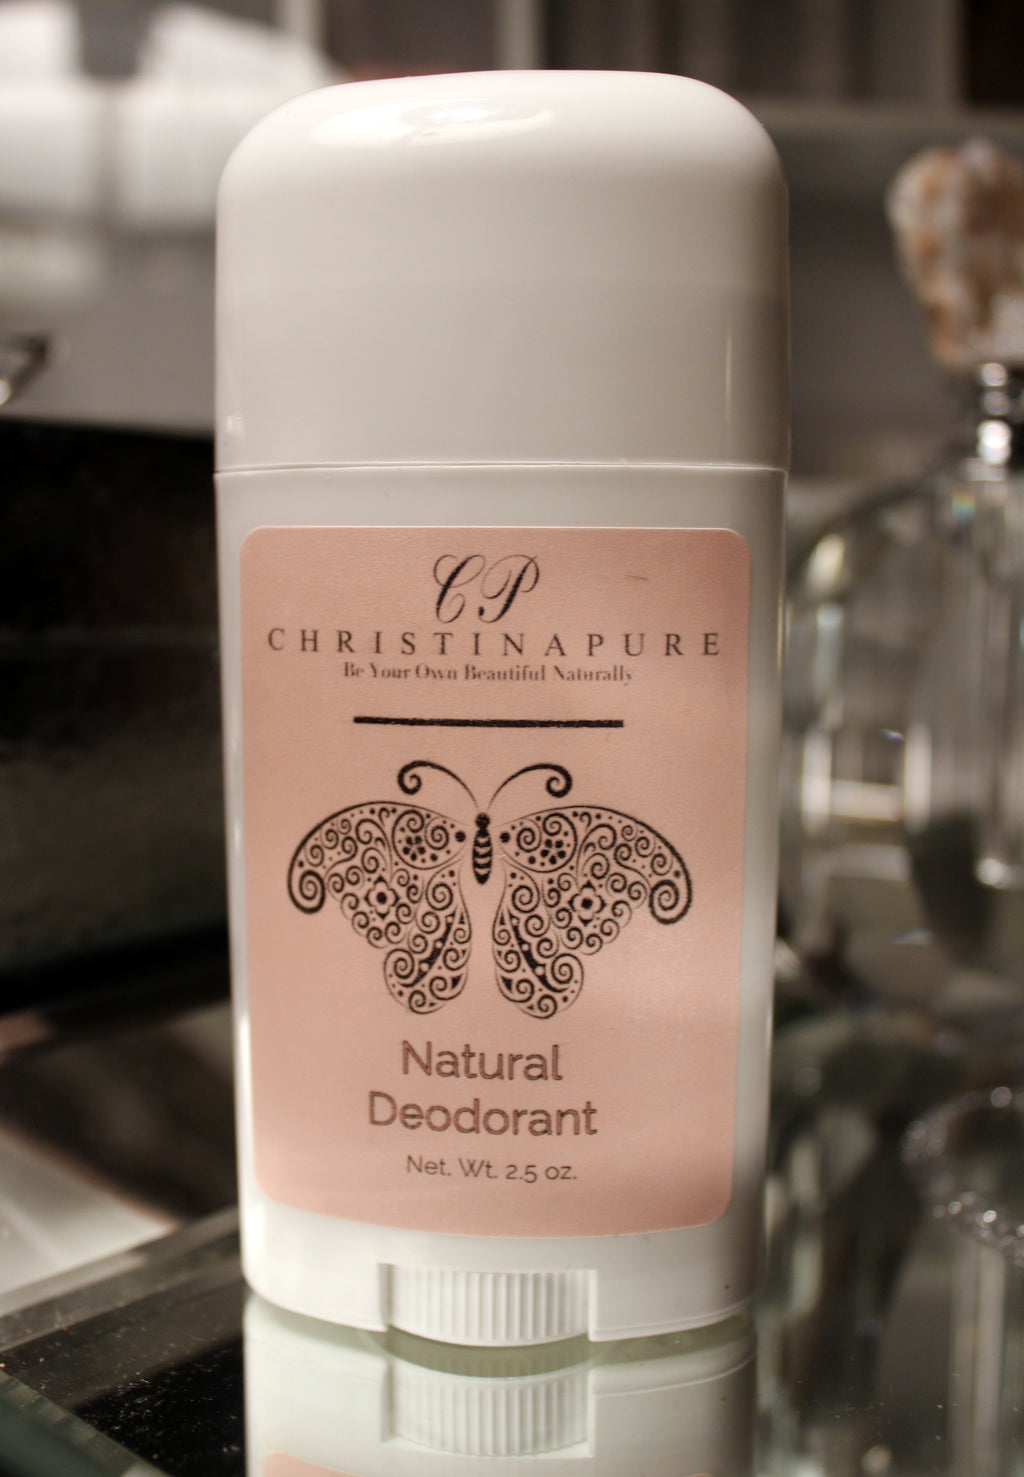 All Natural Rose and Vanilla Deodorant for Women - ChristinaPURE